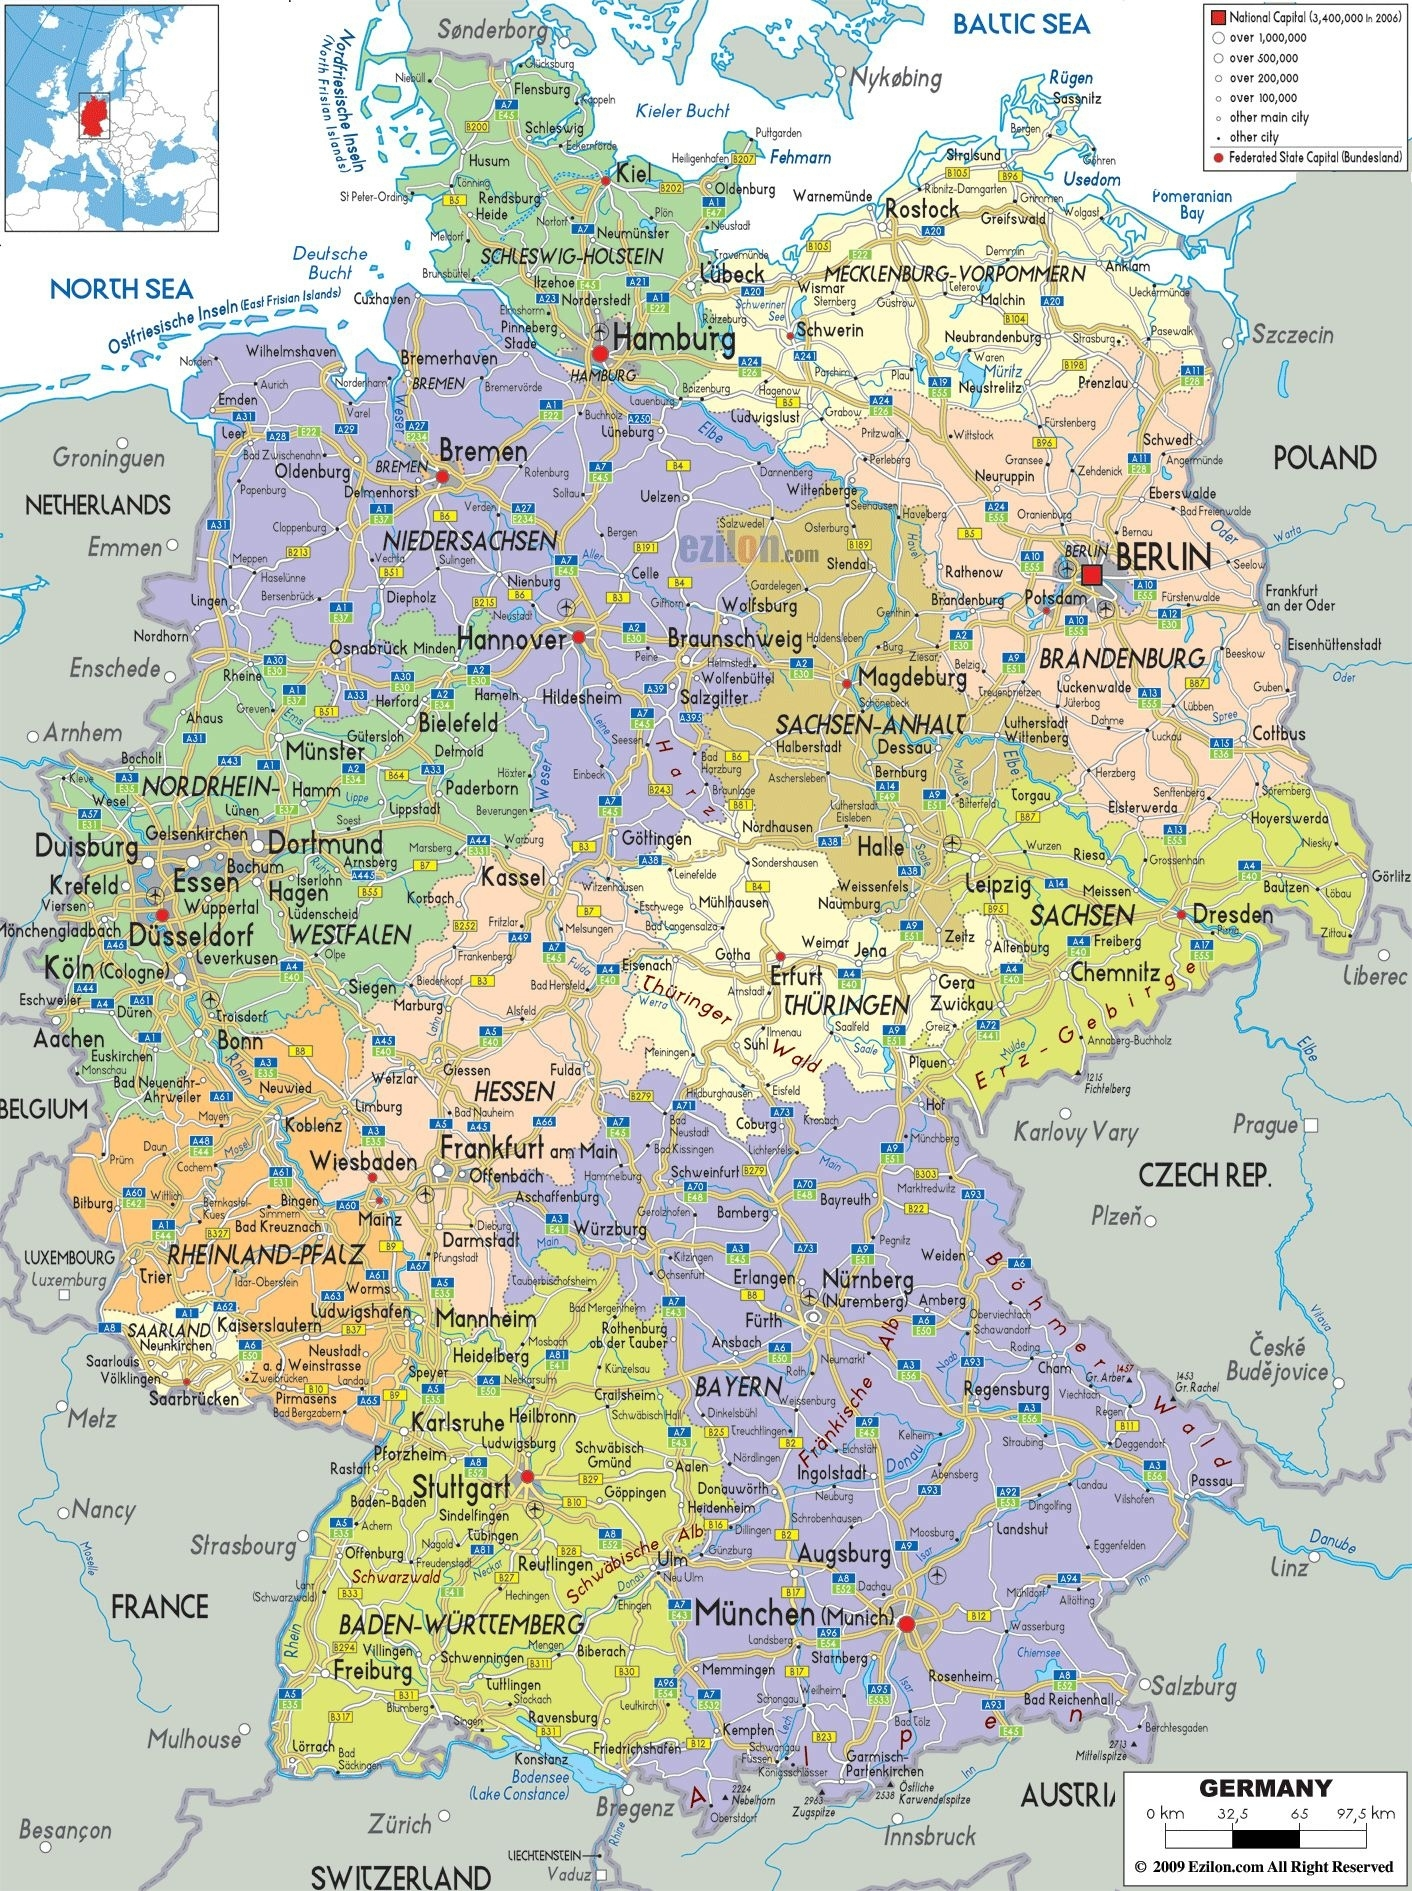 Pinlilas Melancon On Europe 2018 In 2019 | Tourist Map, Map intended for Germany Map Cities Towns